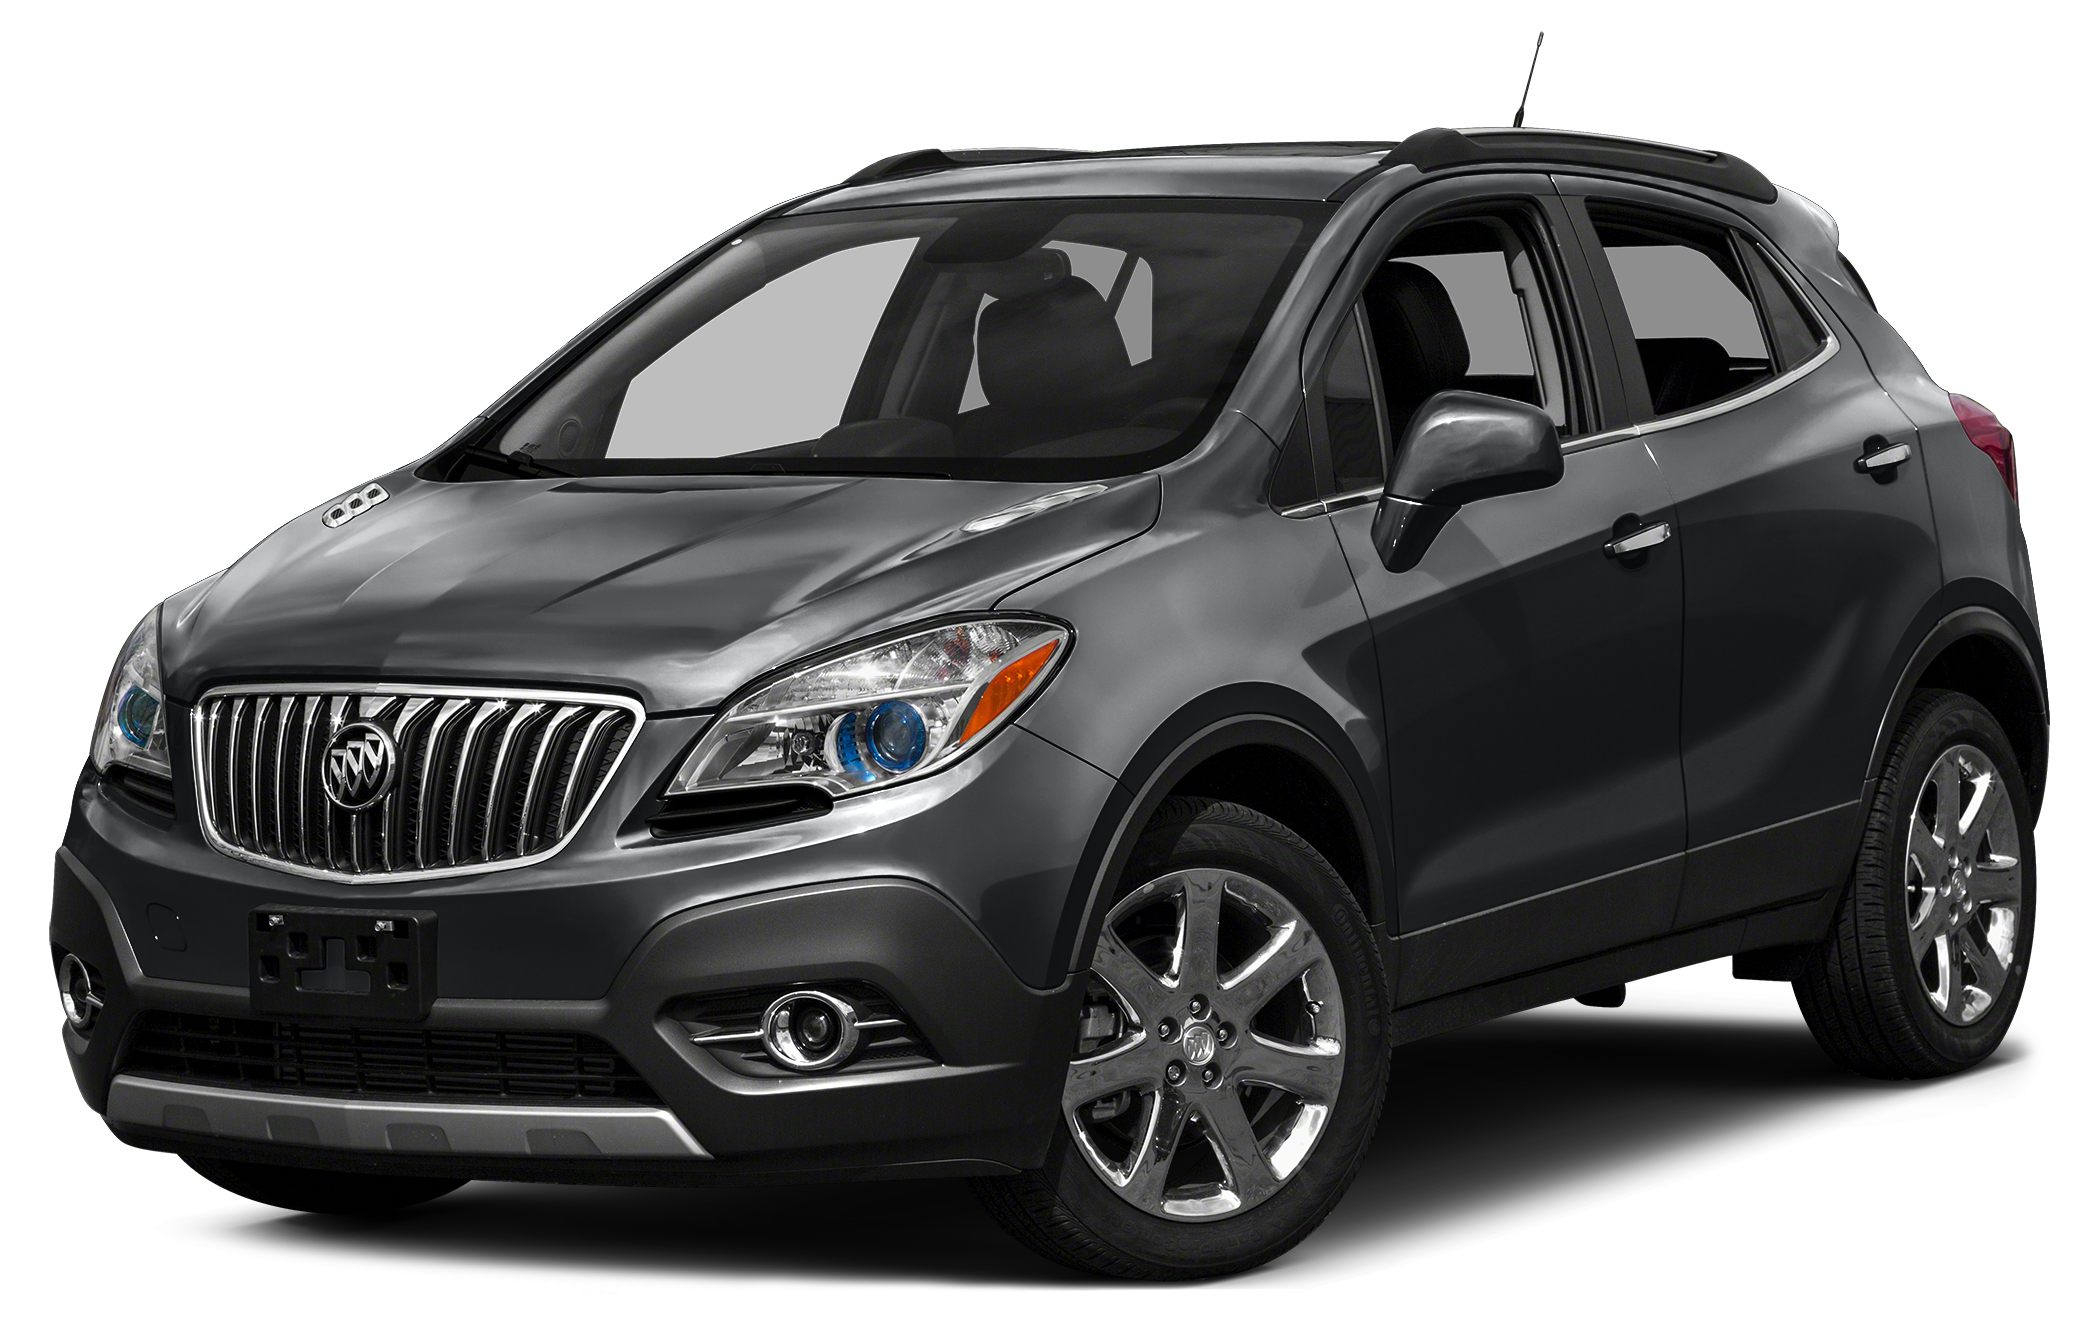 2016 Buick Encore Base Introducing the Buick Encore the luxury crossover with premium materials